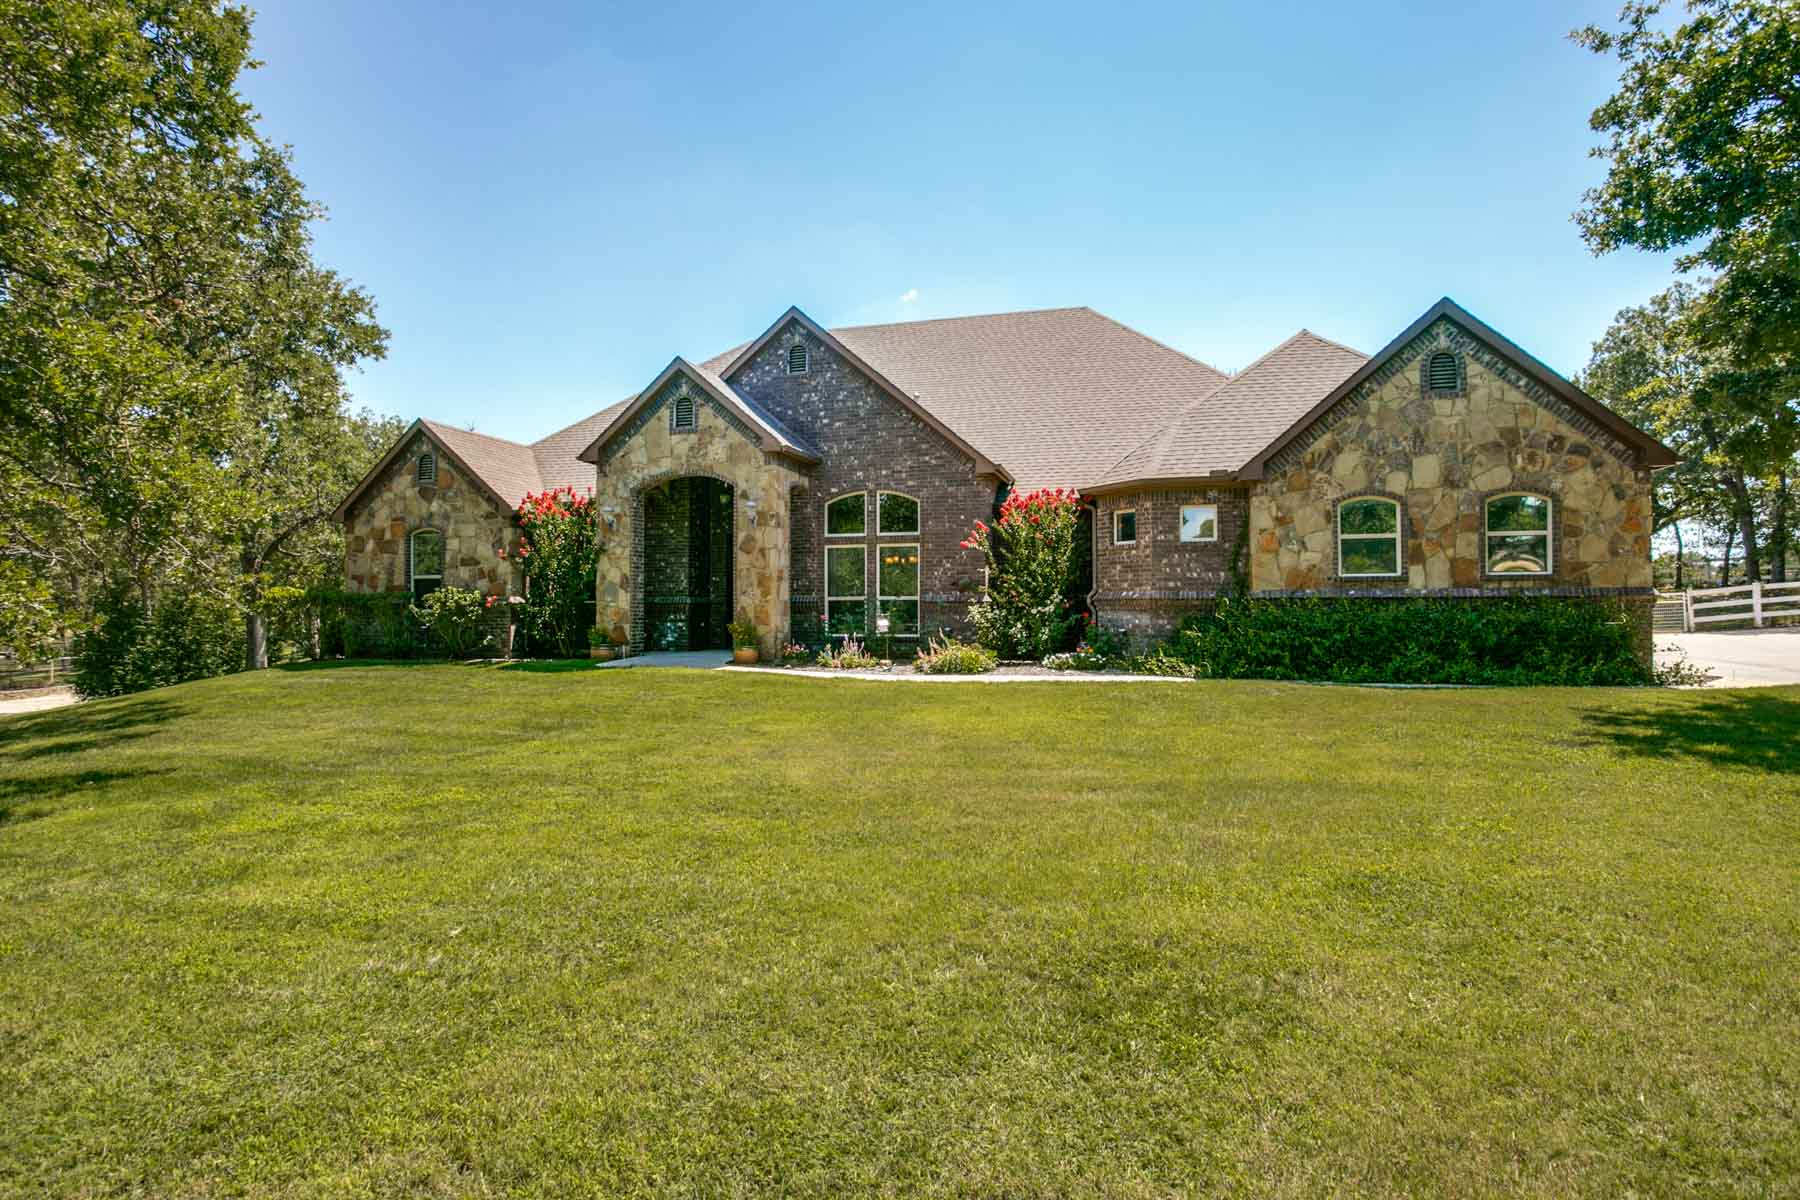 Casa Unifamiliar por un Venta en Greenwood Ranch Estates 211 Pack Saddle Trail Weatherford, Texas, 76088 Estados Unidos